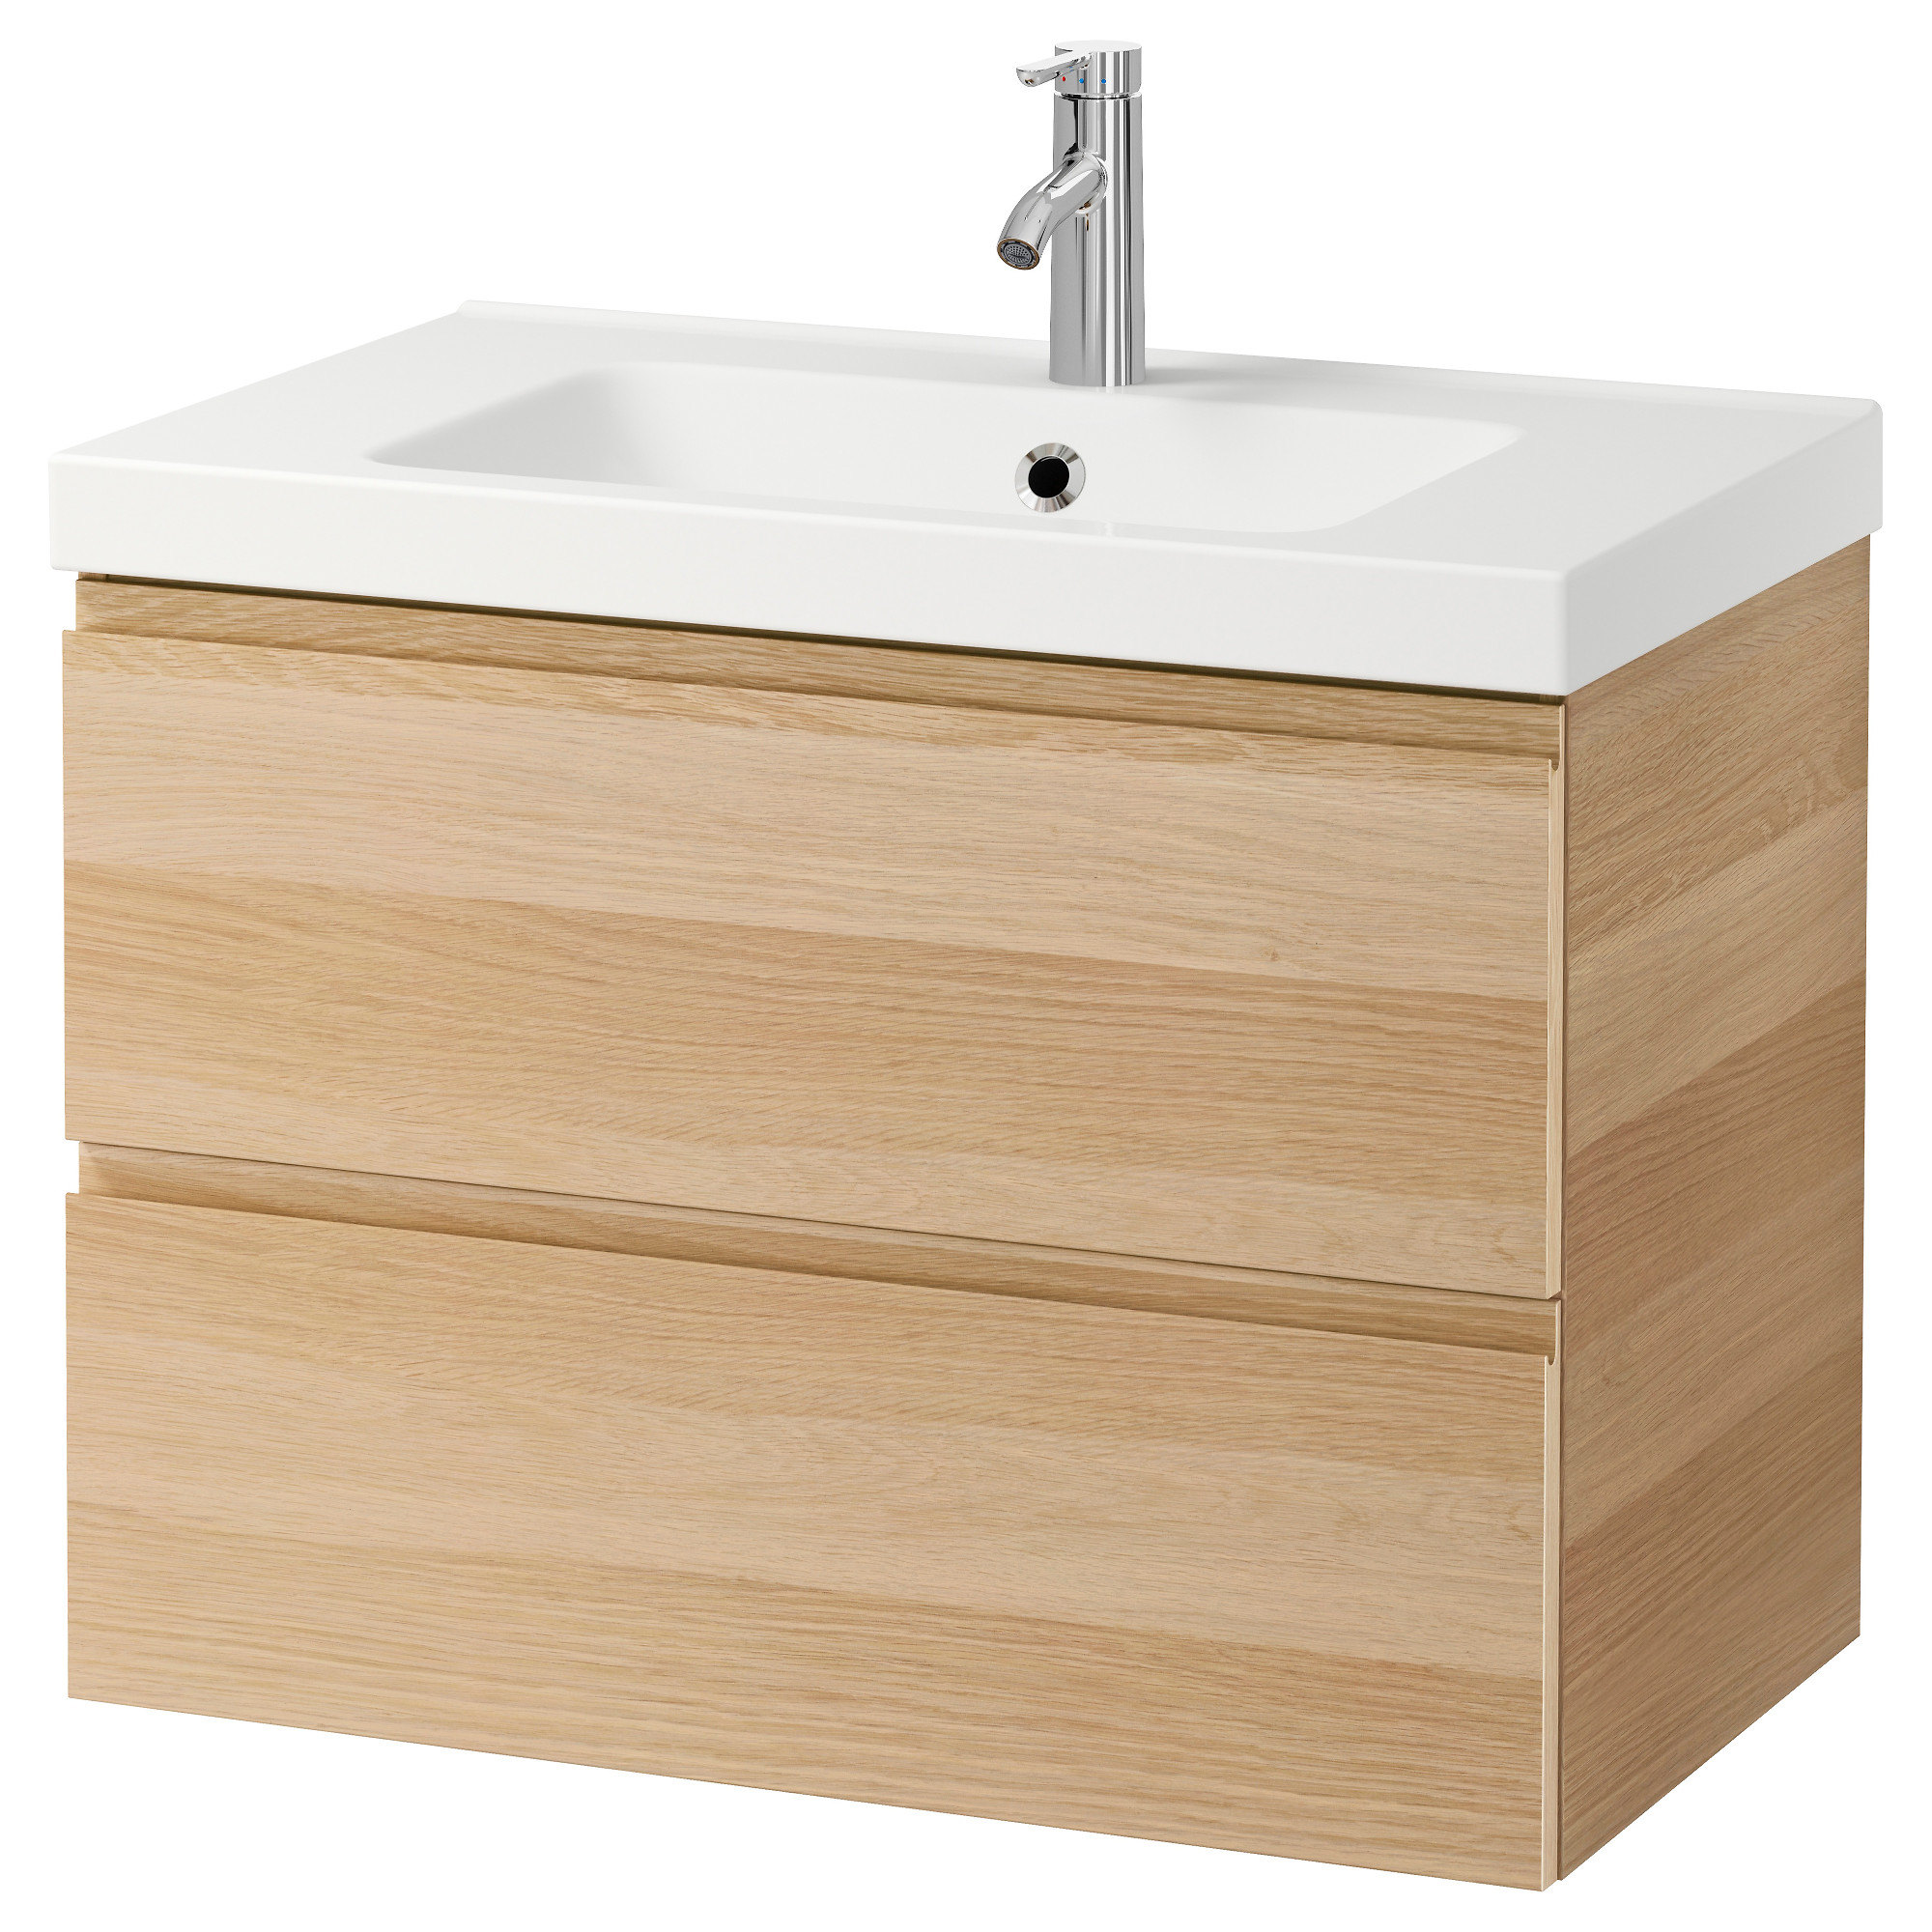 godmorgon / odensvik sink cabinet with 2 drawers - high gloss gray